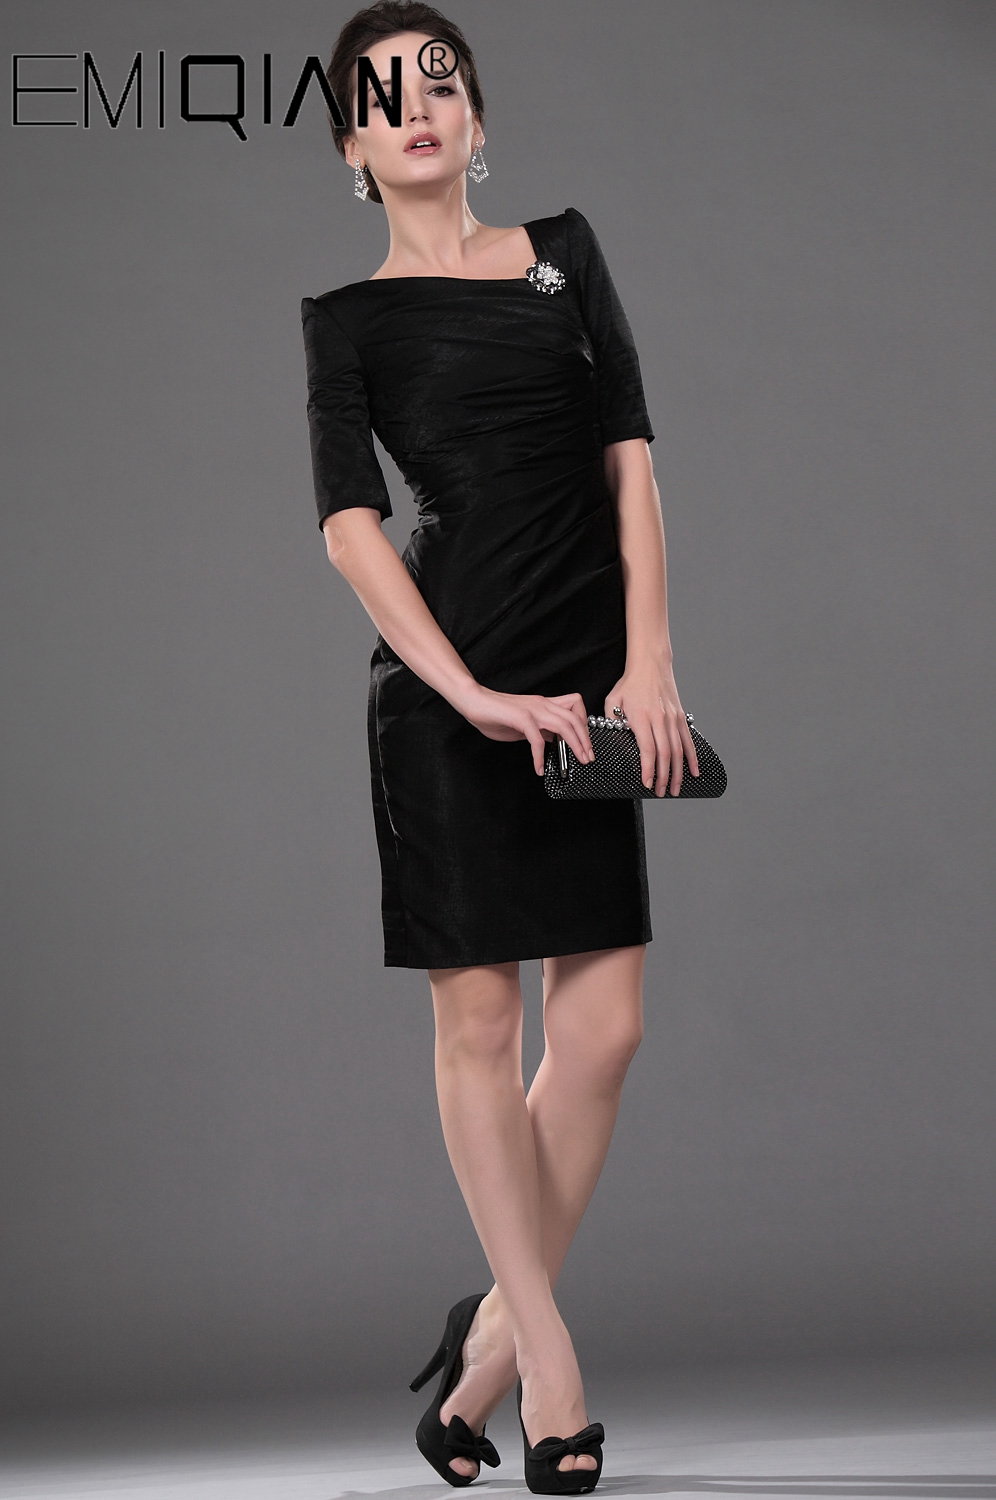 Short Formal Wedding Party Dress Sheath Half Sleeve Knee Length Black Mother Of The Bride Dress